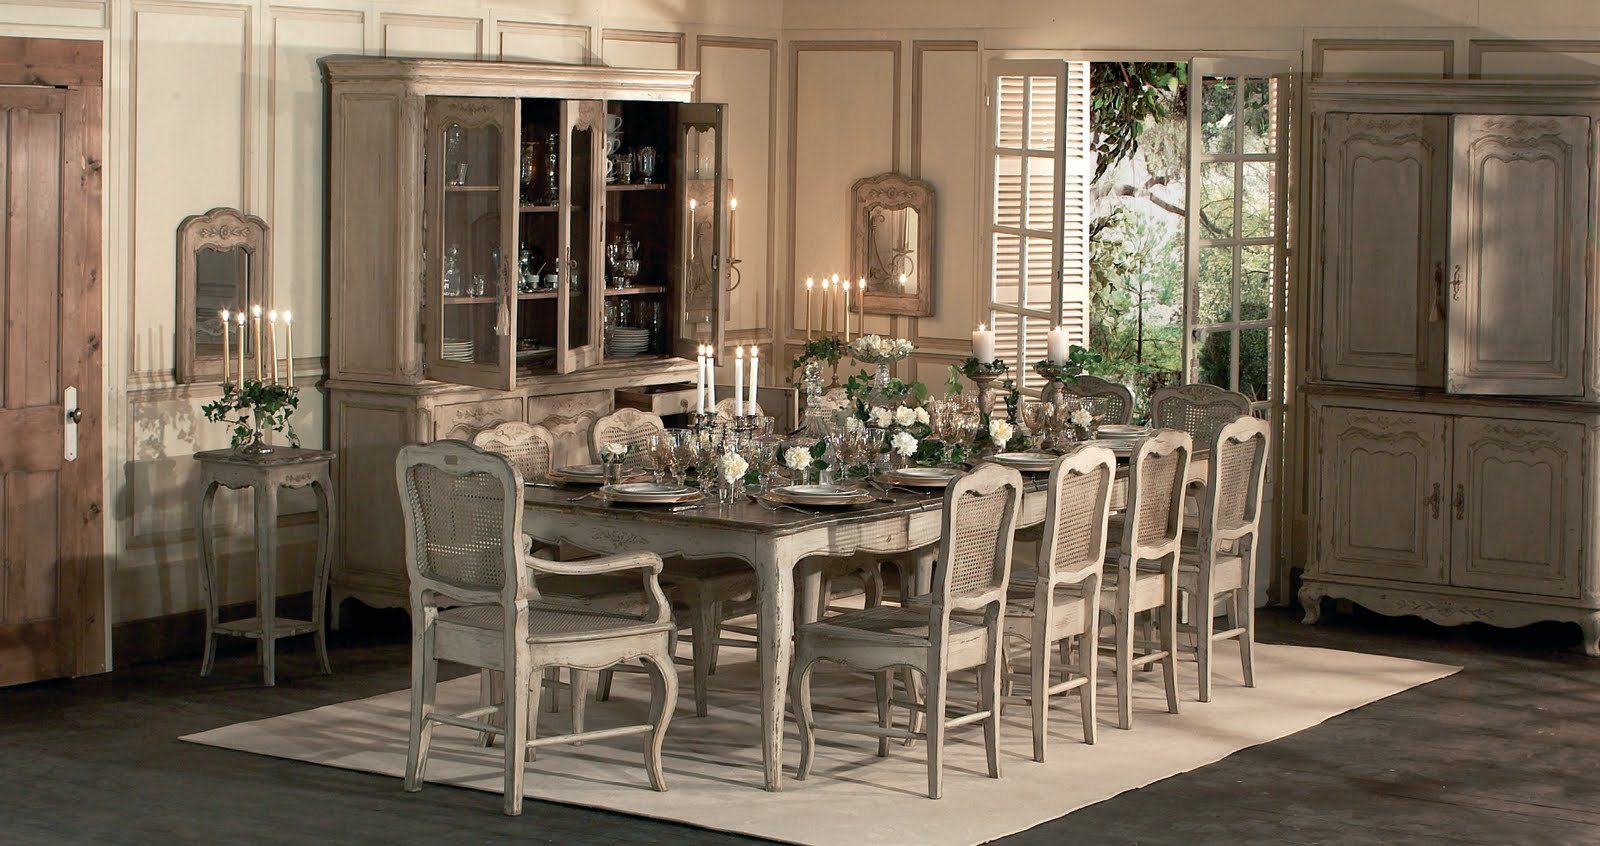 Rustic french country dining room - French Country Dining Room